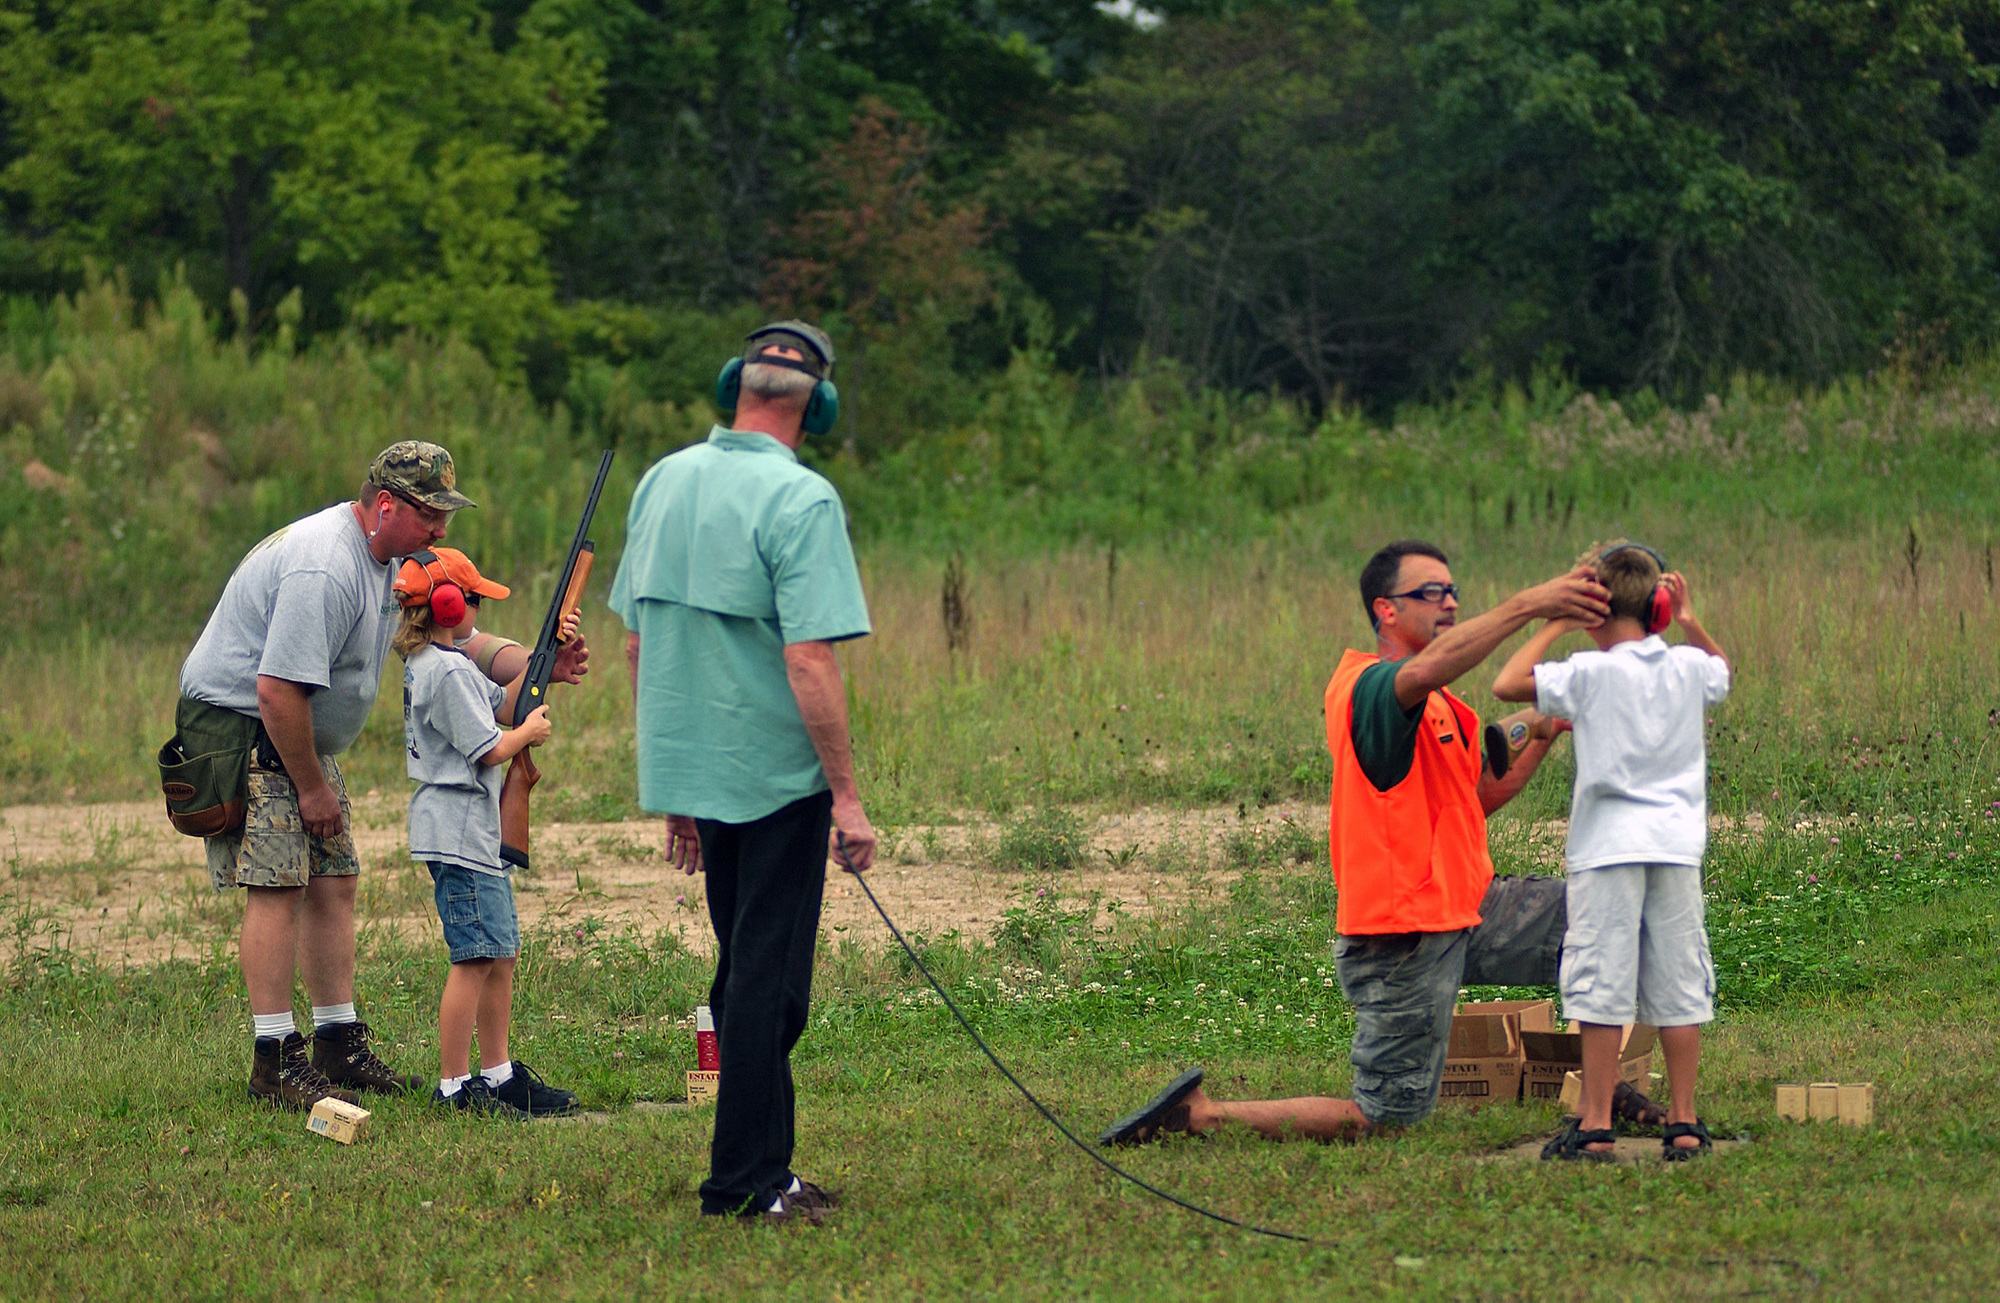 Hunter safety instruction by volunteers at Chief Okemos Sportsman Club in Dimondale, Michigan.